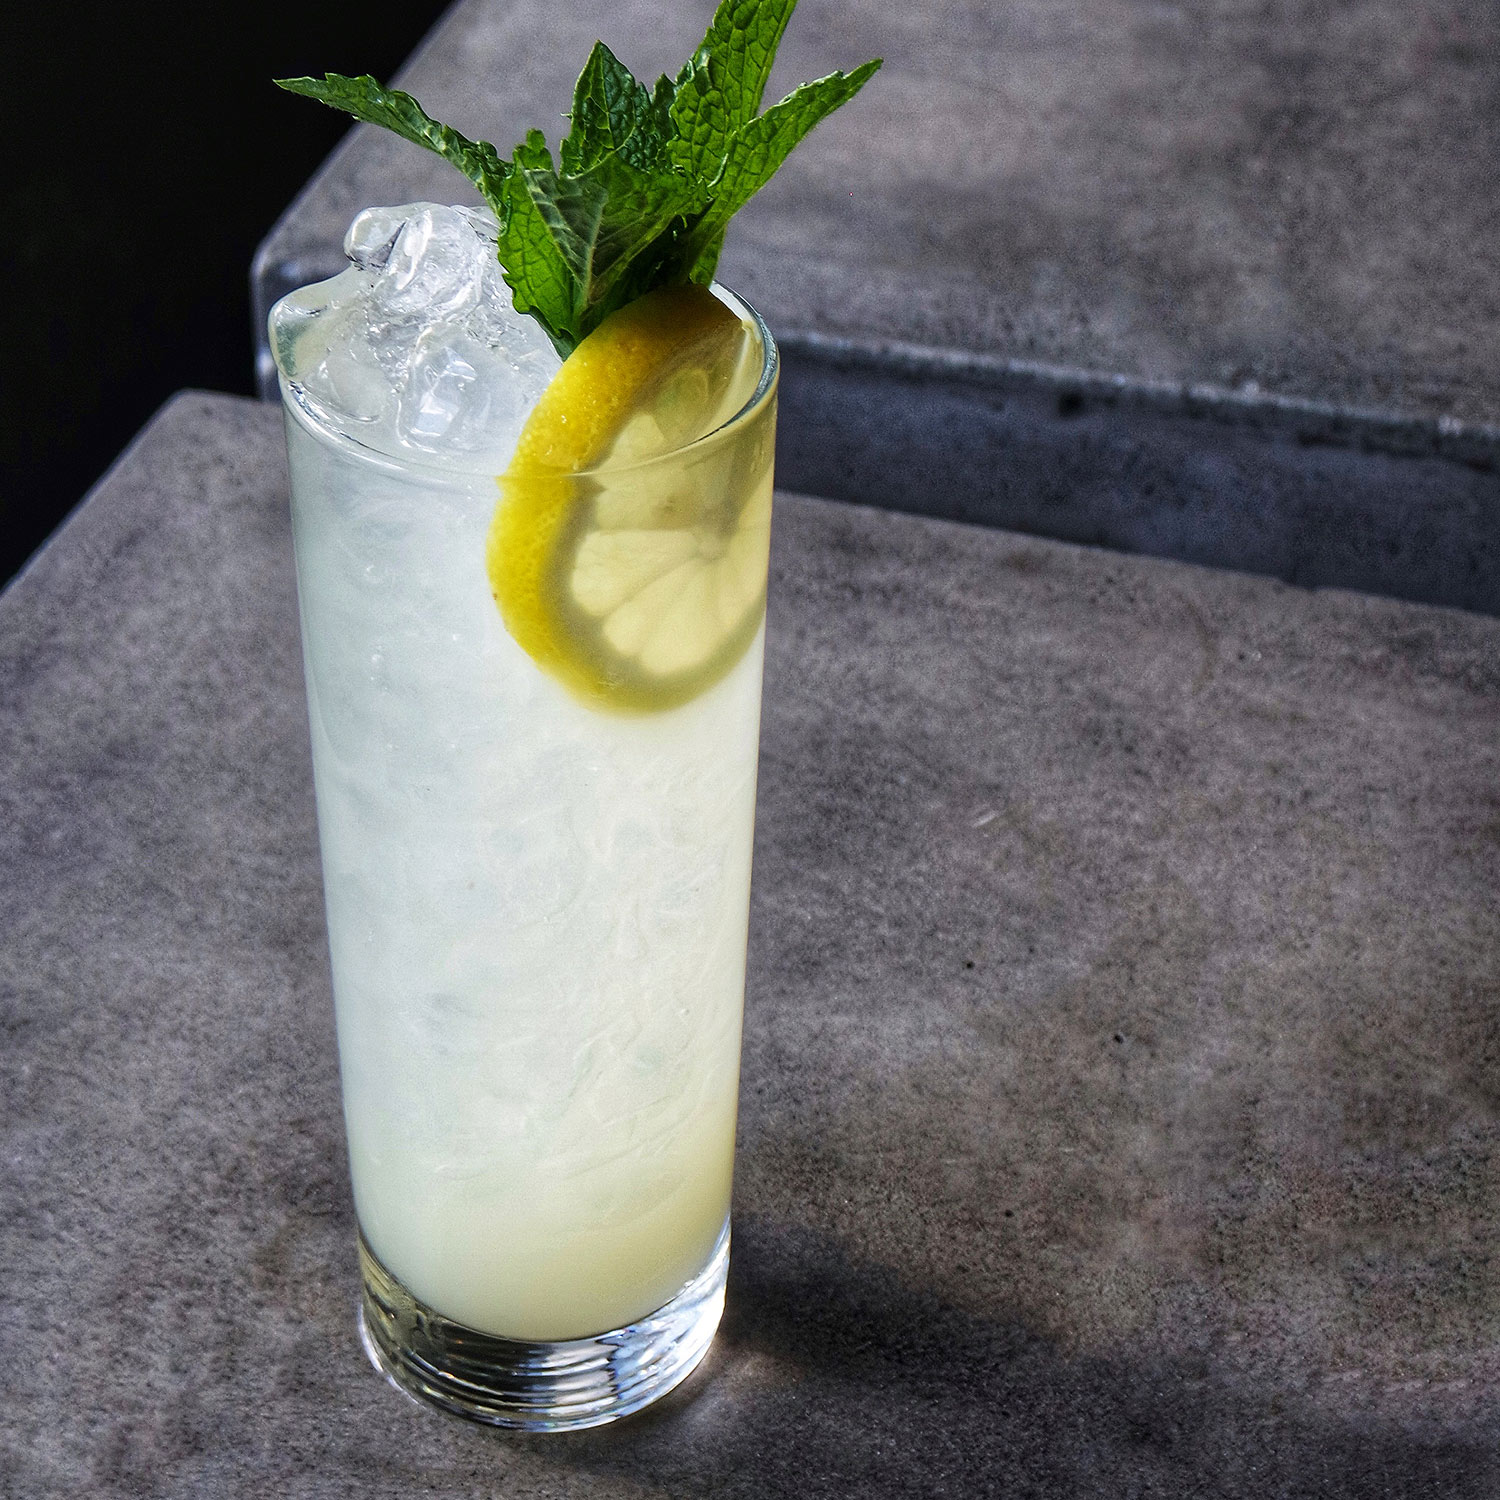 KEEL-Cocktail-Even-KEEL-Lemondade.jpg